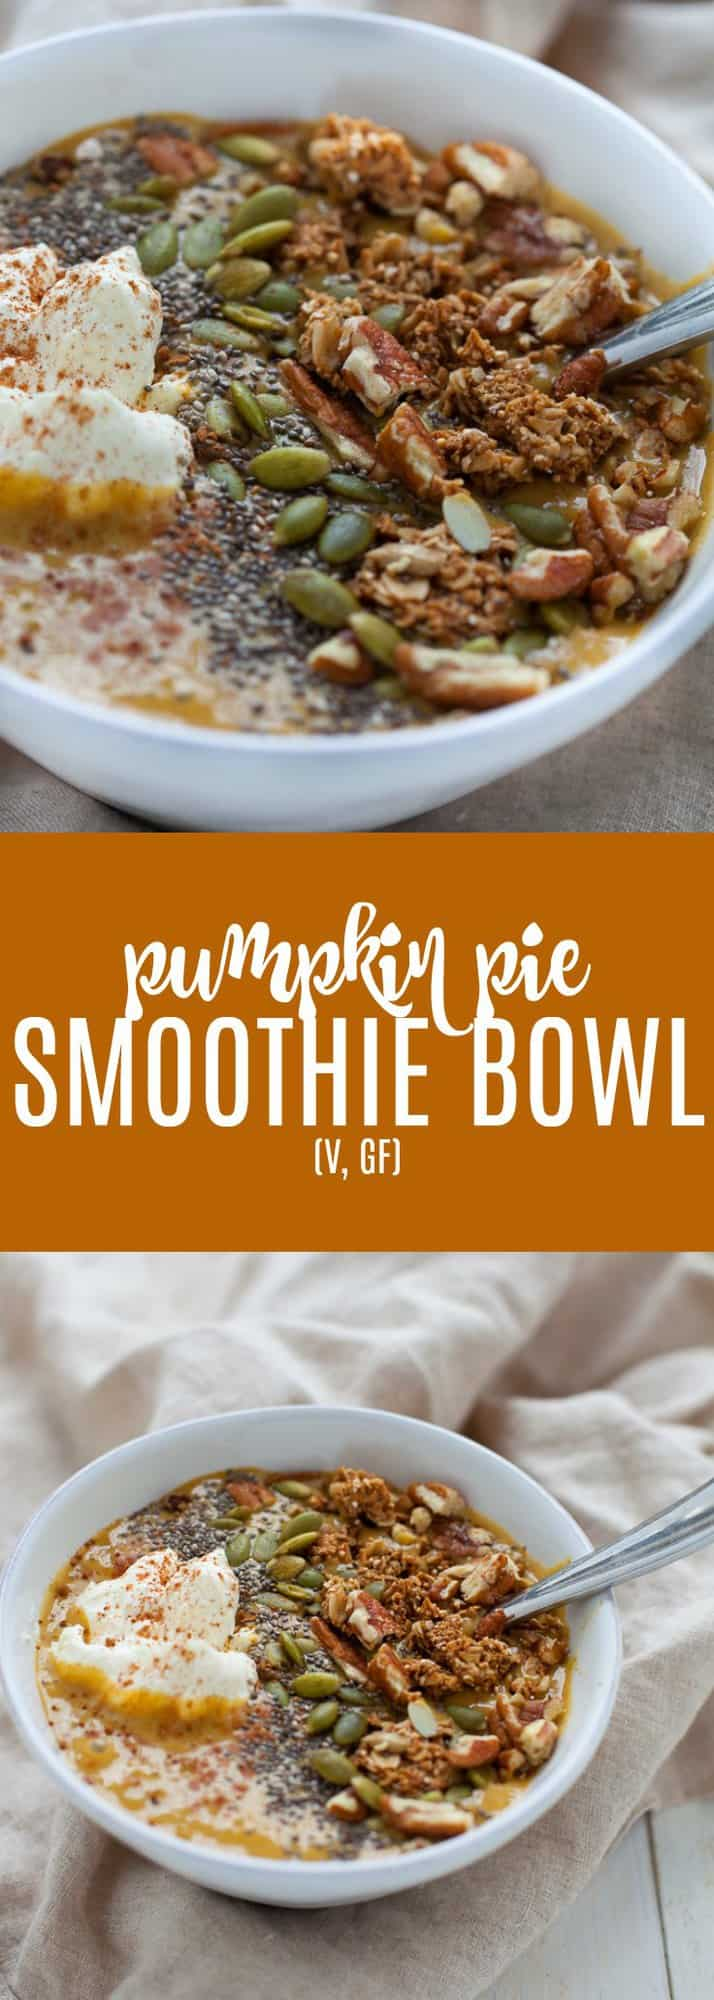 This Pumpkin Pie Smoothie Bowl is a feel-good bowl of nothing but pumpkin power. Perfect breakfast for the fall with only 4 ingredients and no sugar added! Vegan and gluten-free.